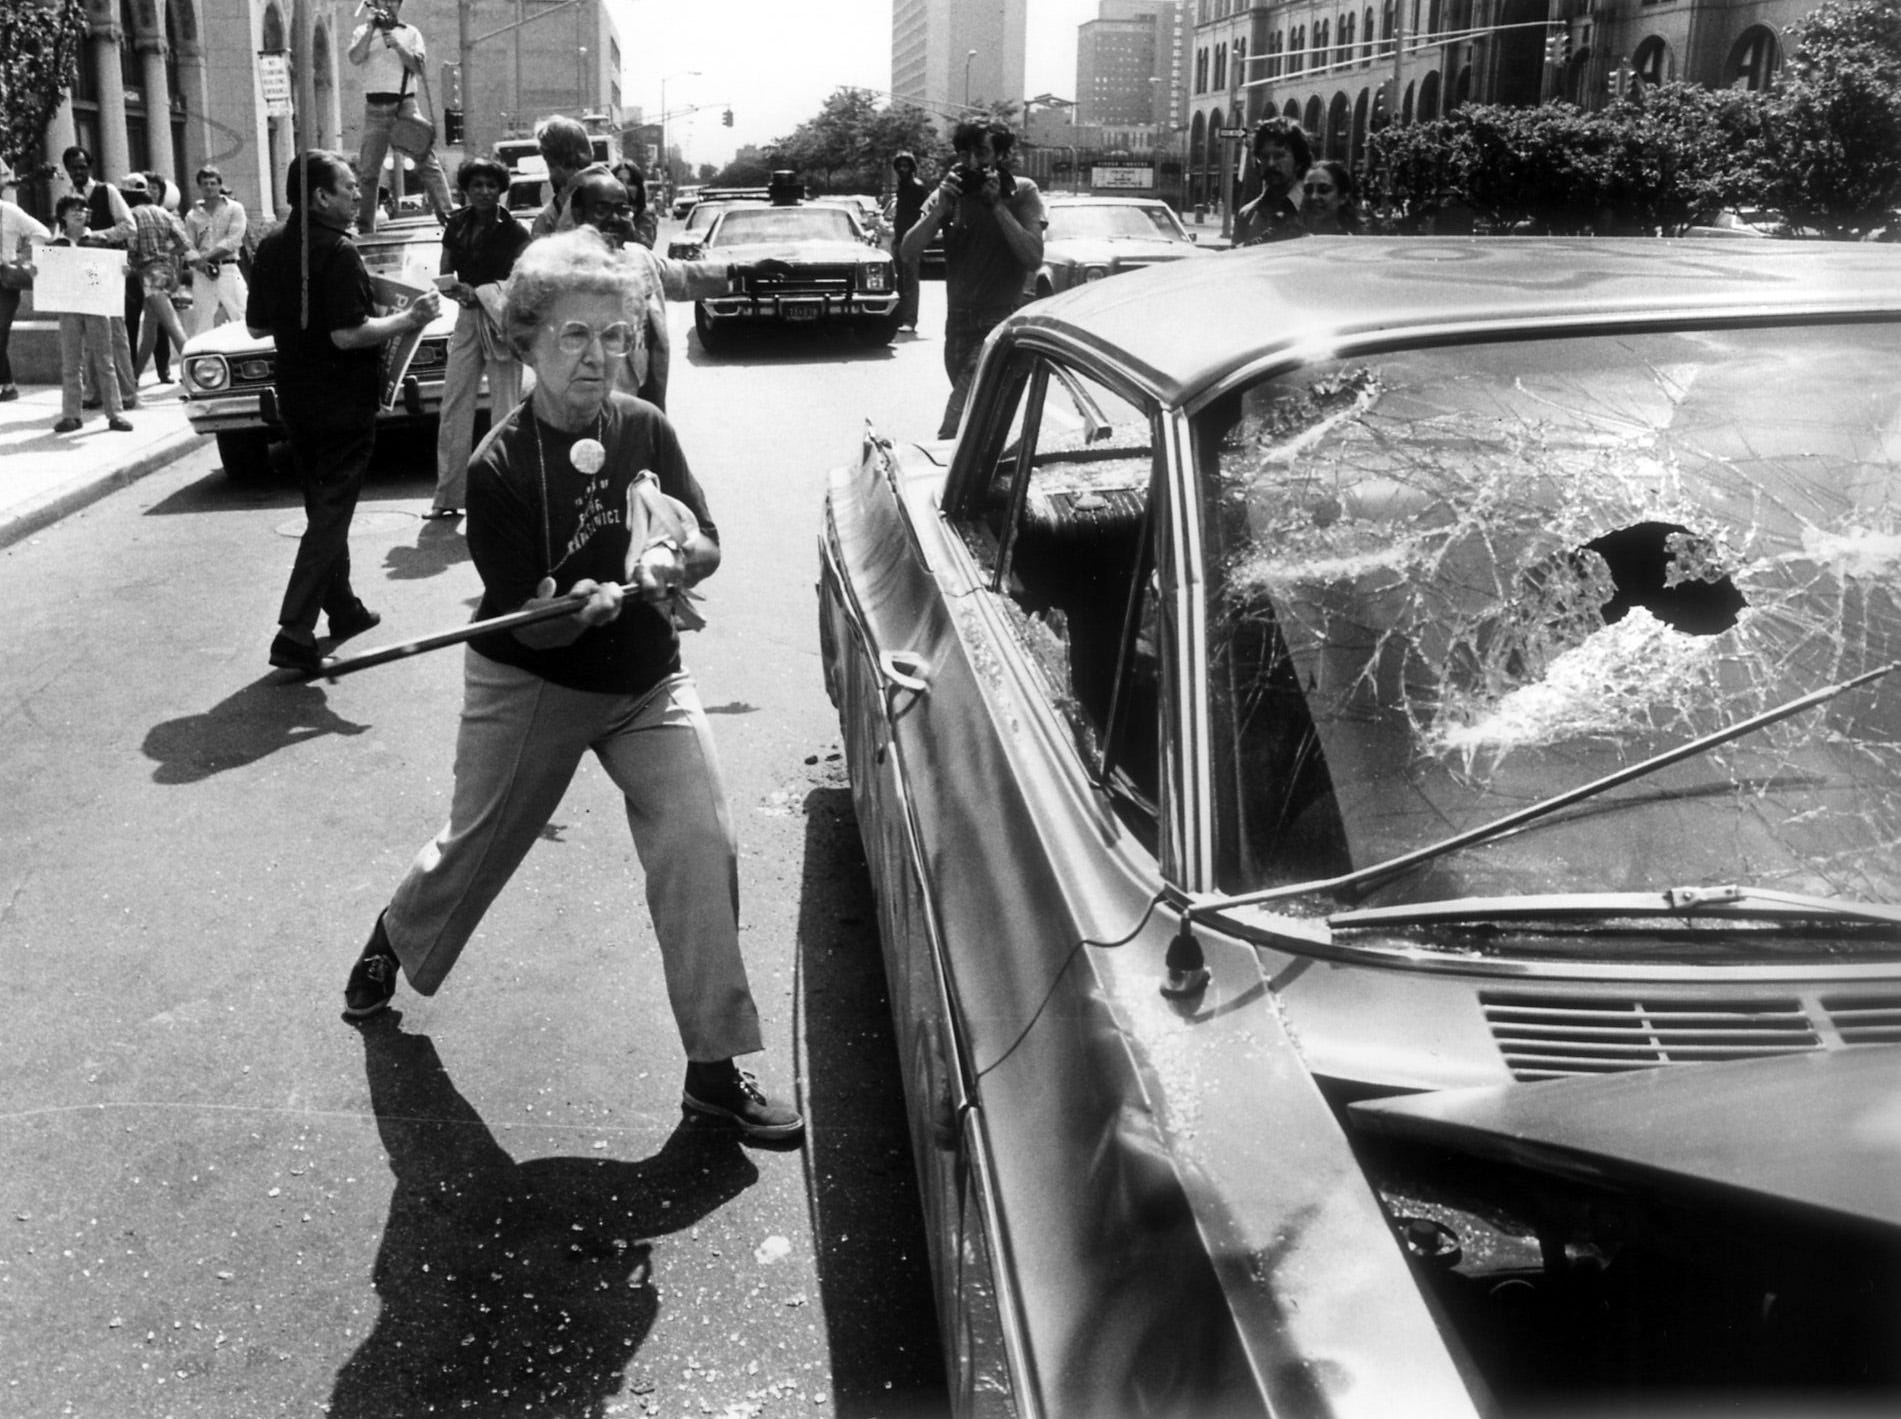 Marie Grucz, 71, takes out her frustration with General Motors on a faded gold 1964 Oldsmobile as about 40 protesters assembled in front of the GM headquarters in the Detroit's New Center area. The city of Detroit forced out 3,438 residents and demolished 1,300 homes.